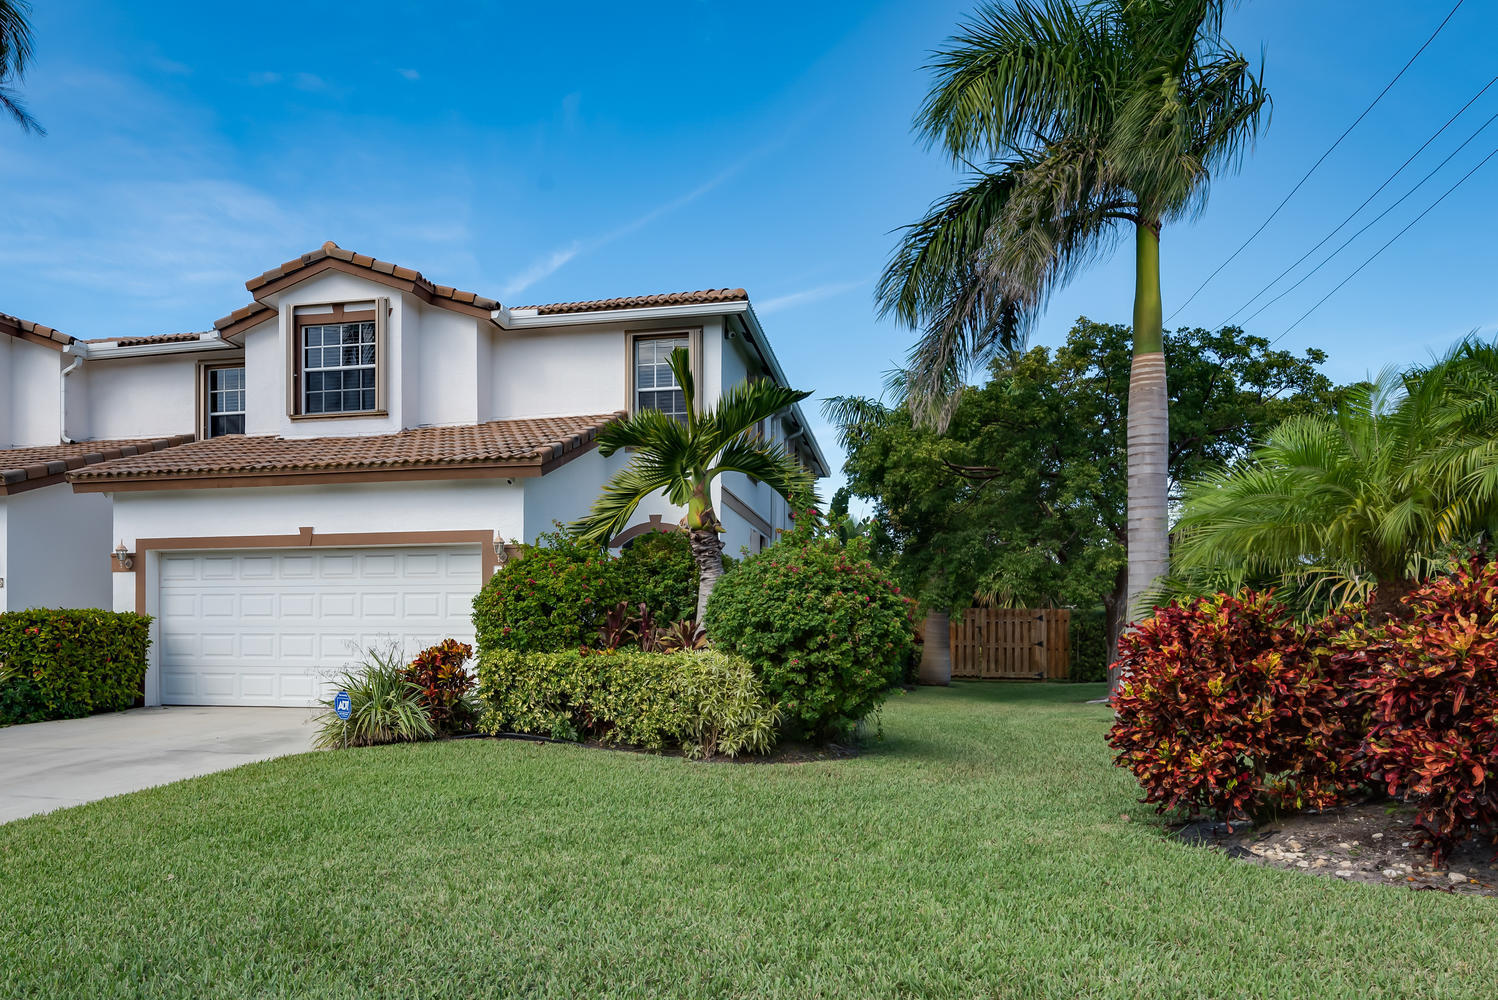 Home for sale in SPANISH TRAIL DOGWOOD TOWNHOMES Delray Beach Florida